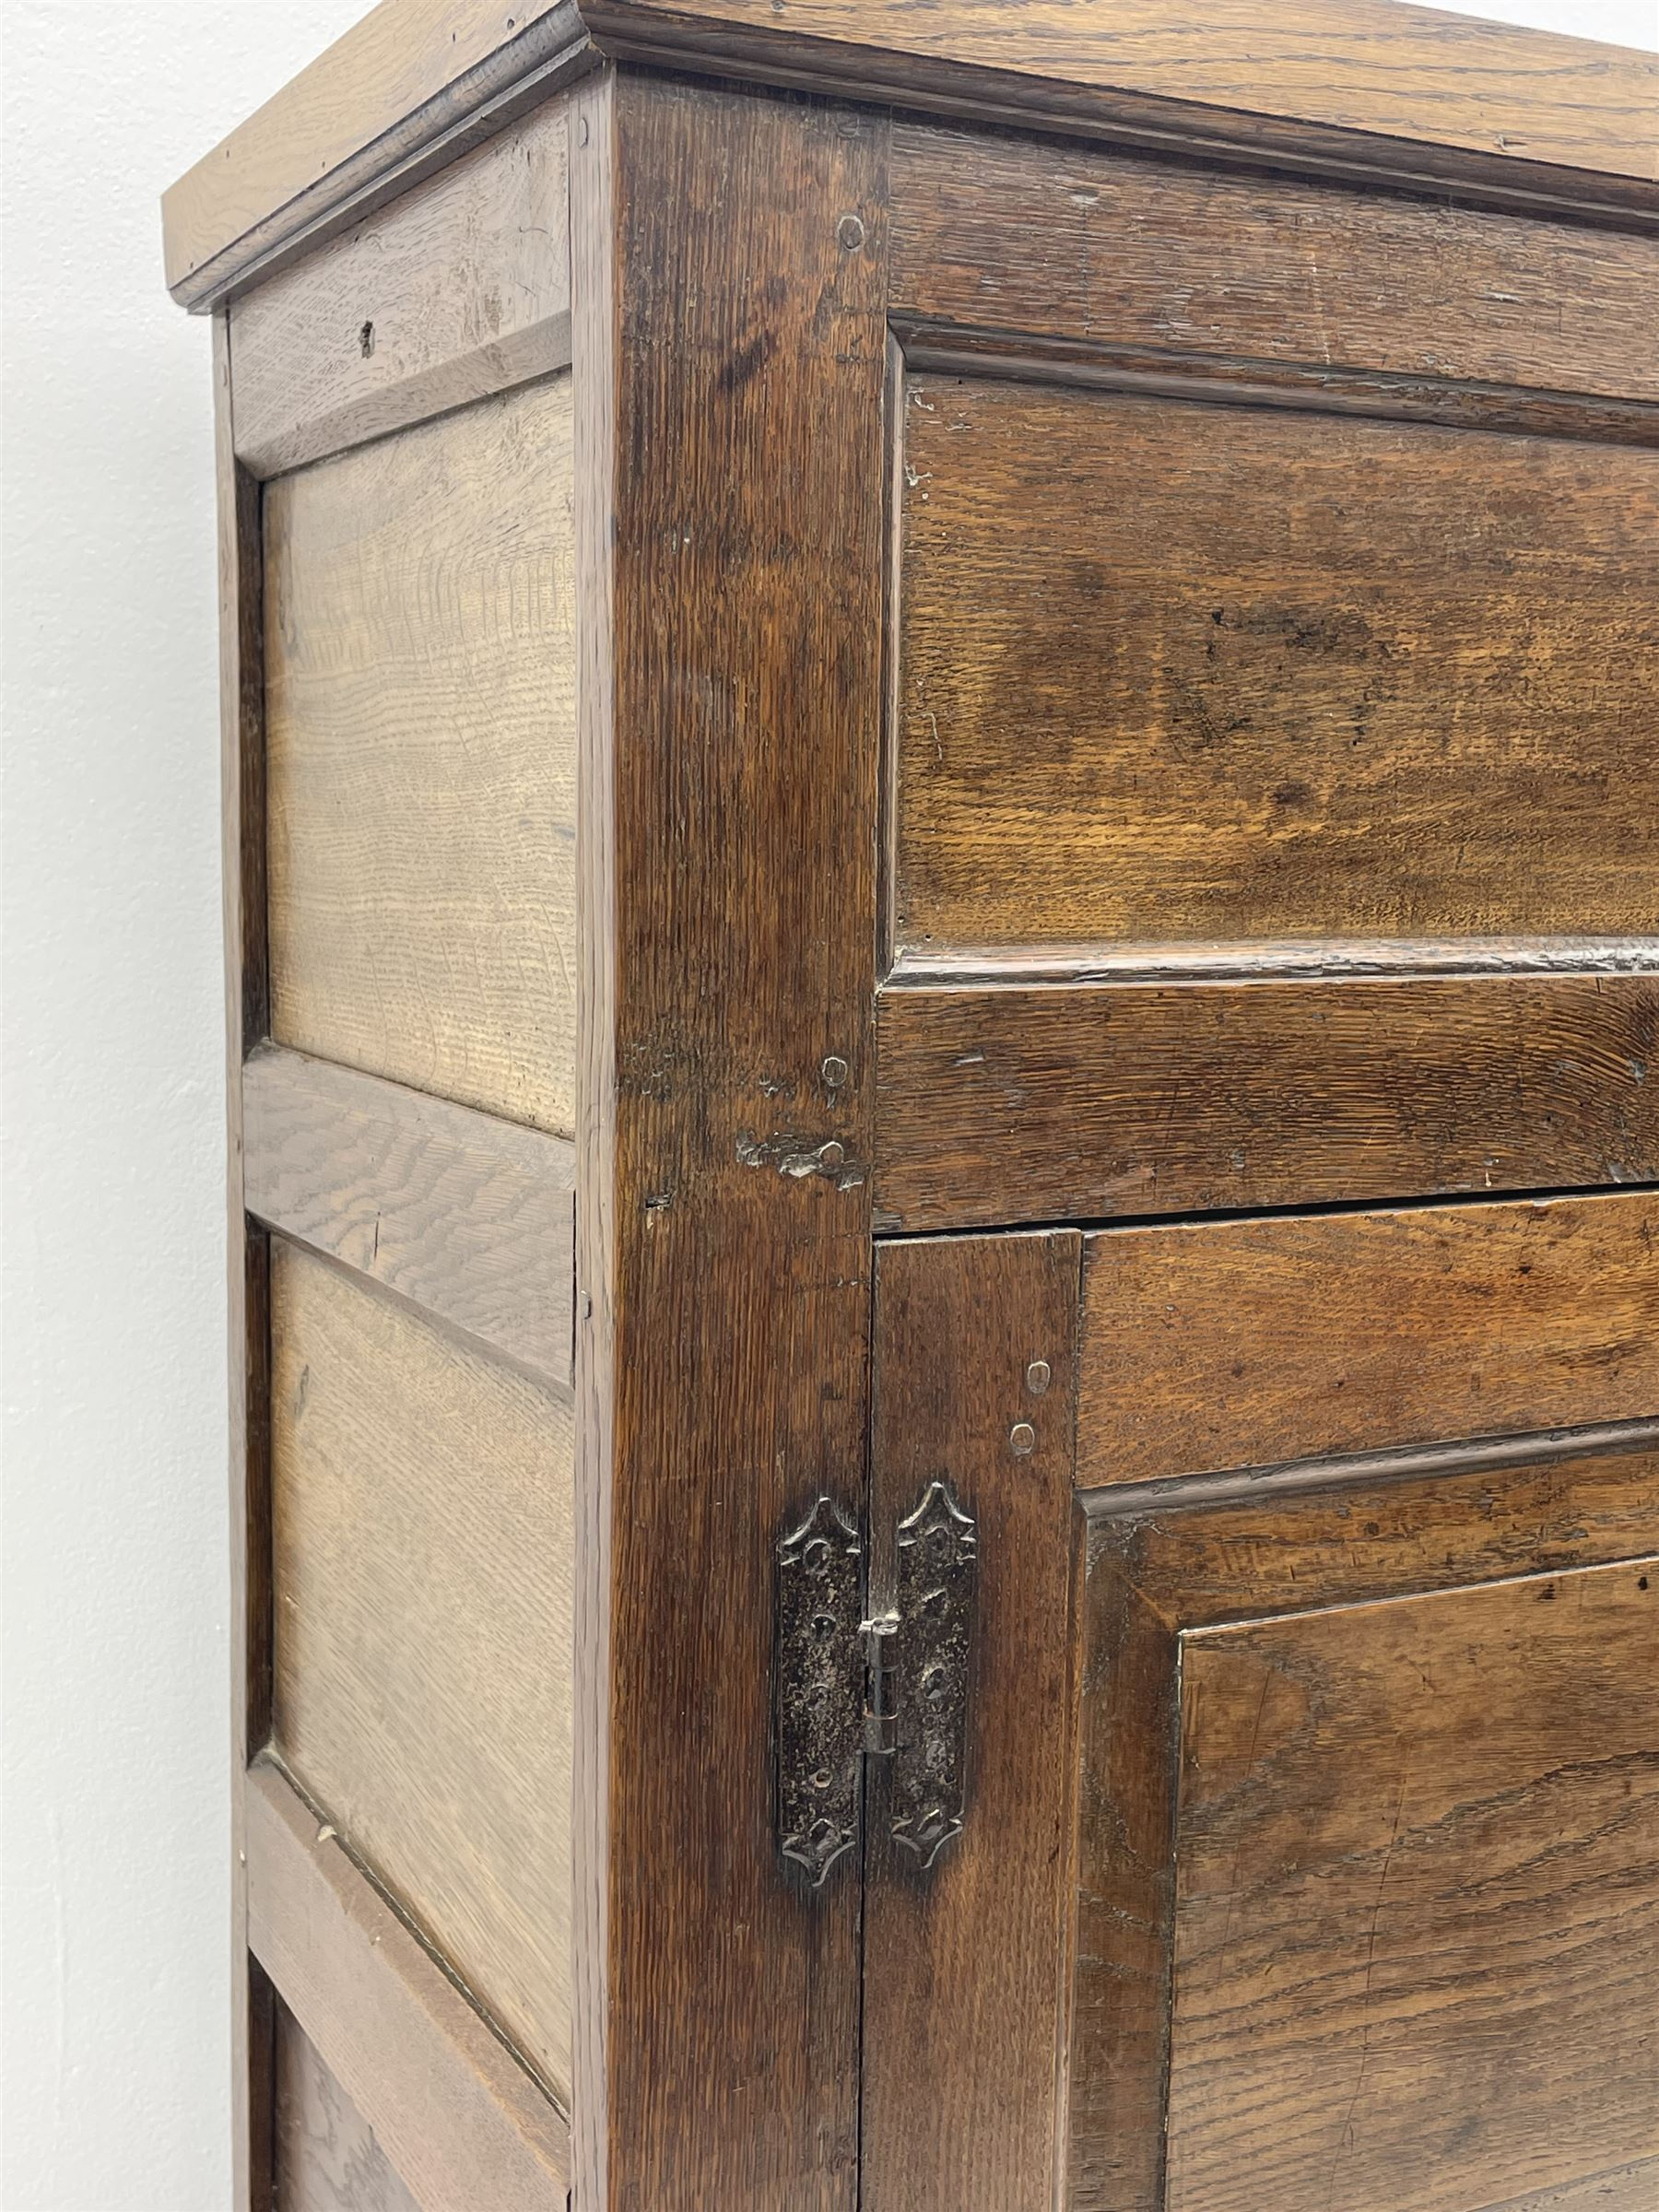 18th century and later oak livery cupboard - Image 3 of 8